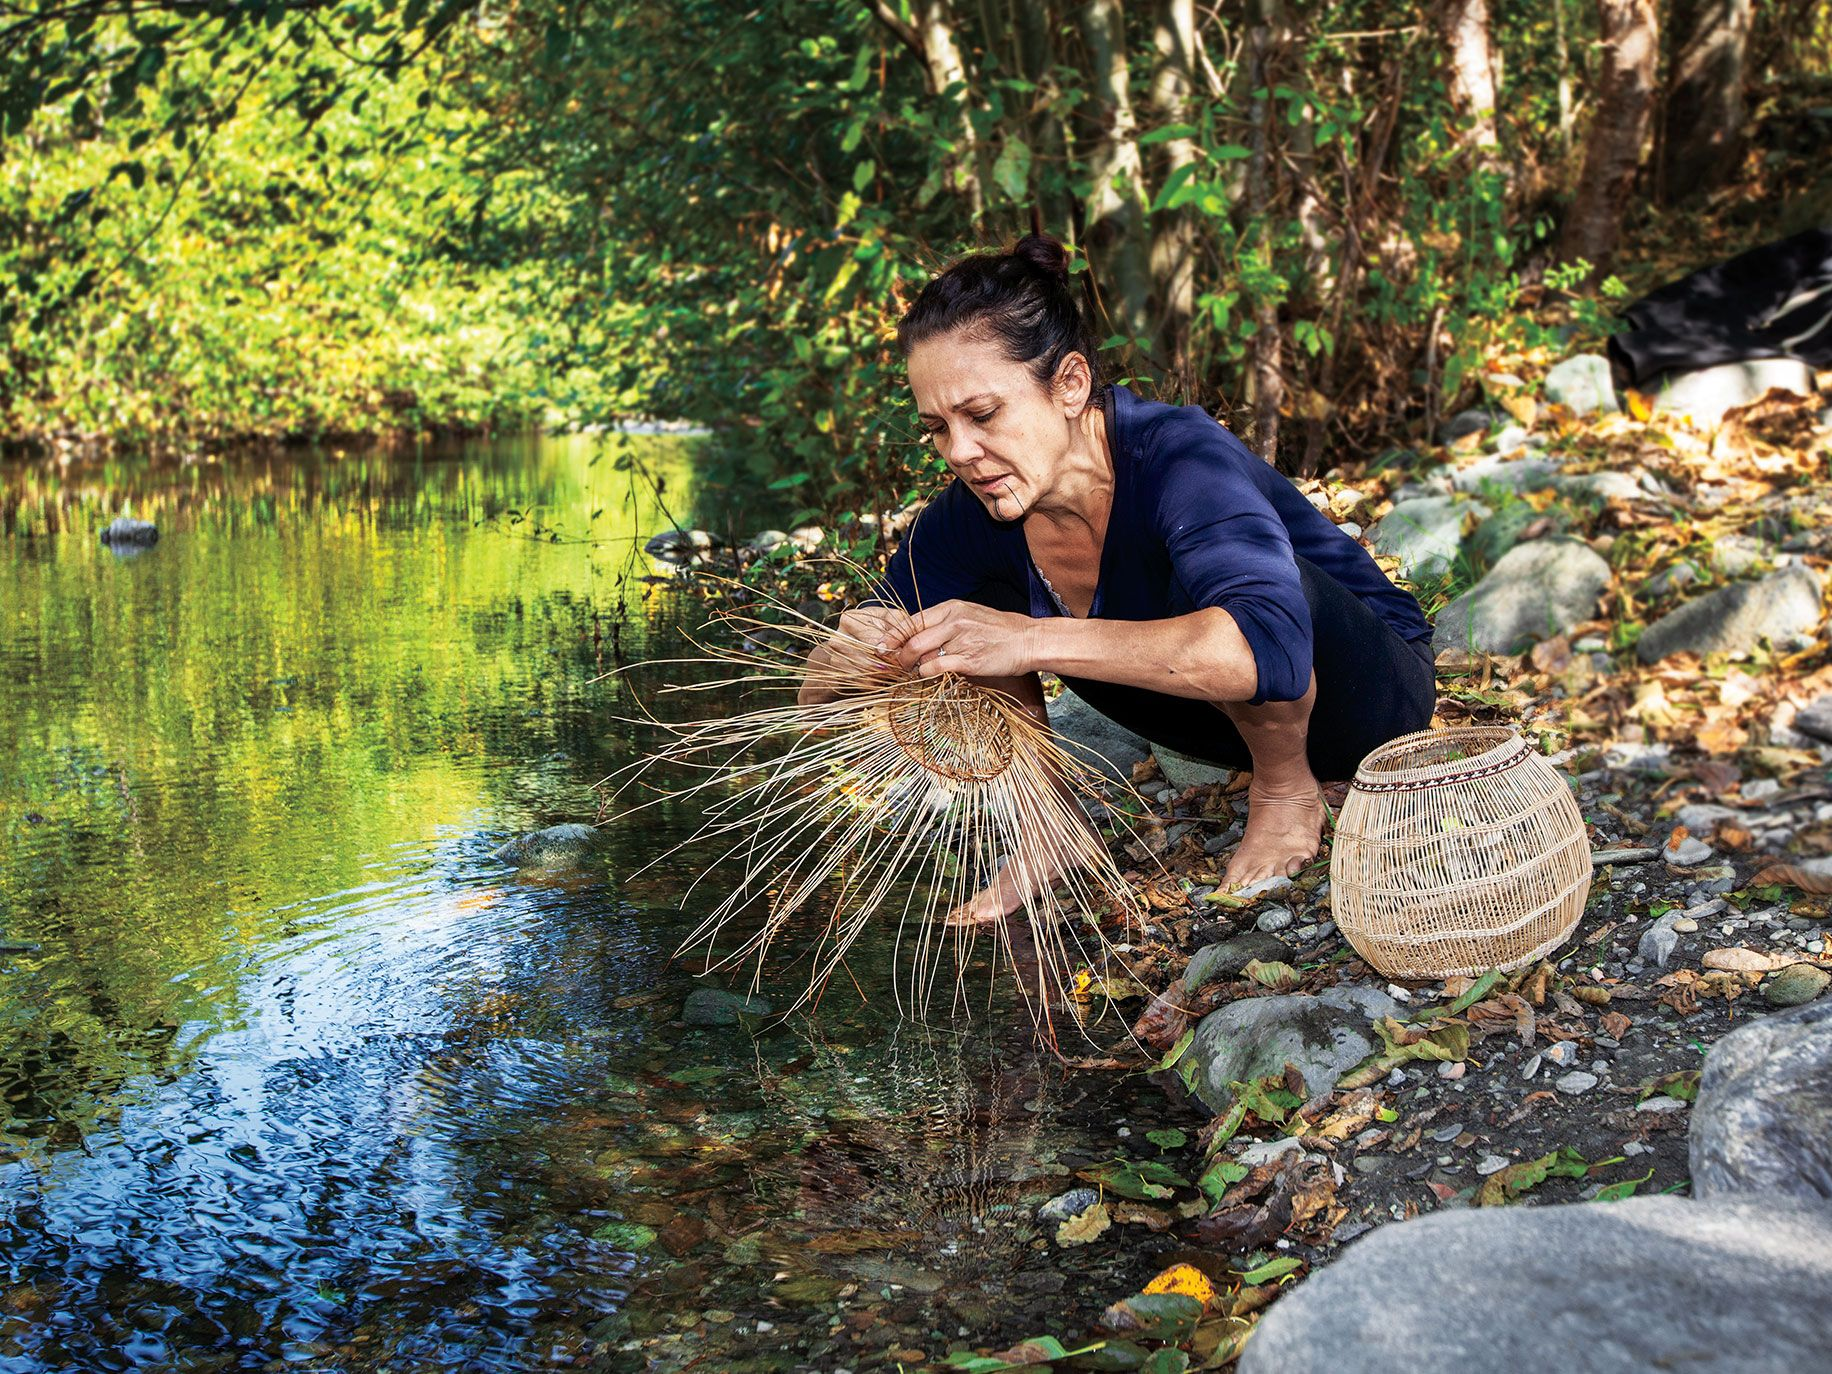 Lisa Hillman, a Pikyav Field Institute program manager, weaves plant materials that she dunks in water to make them more pliable. After a burn, the new shoots of hazel shrubs are sought by basket makers.